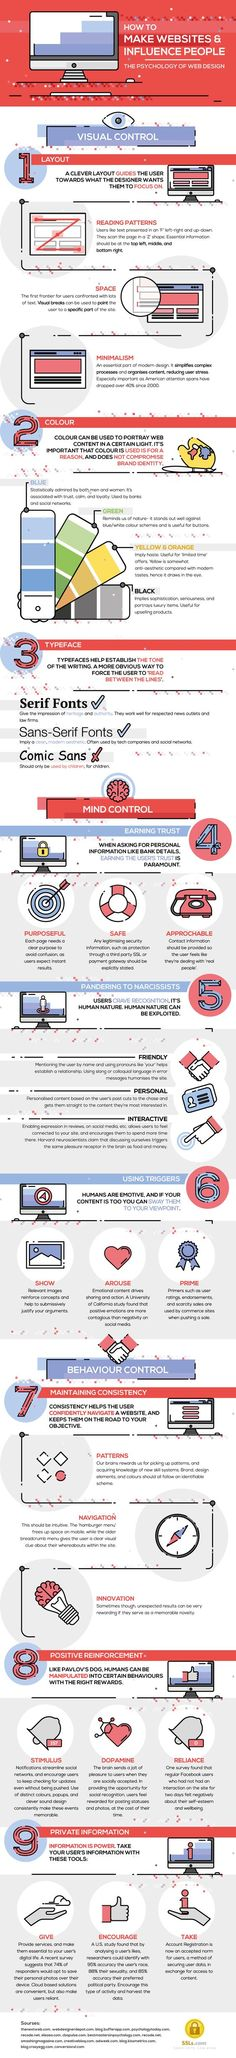 How To Make Websites and Influence People #Infographic